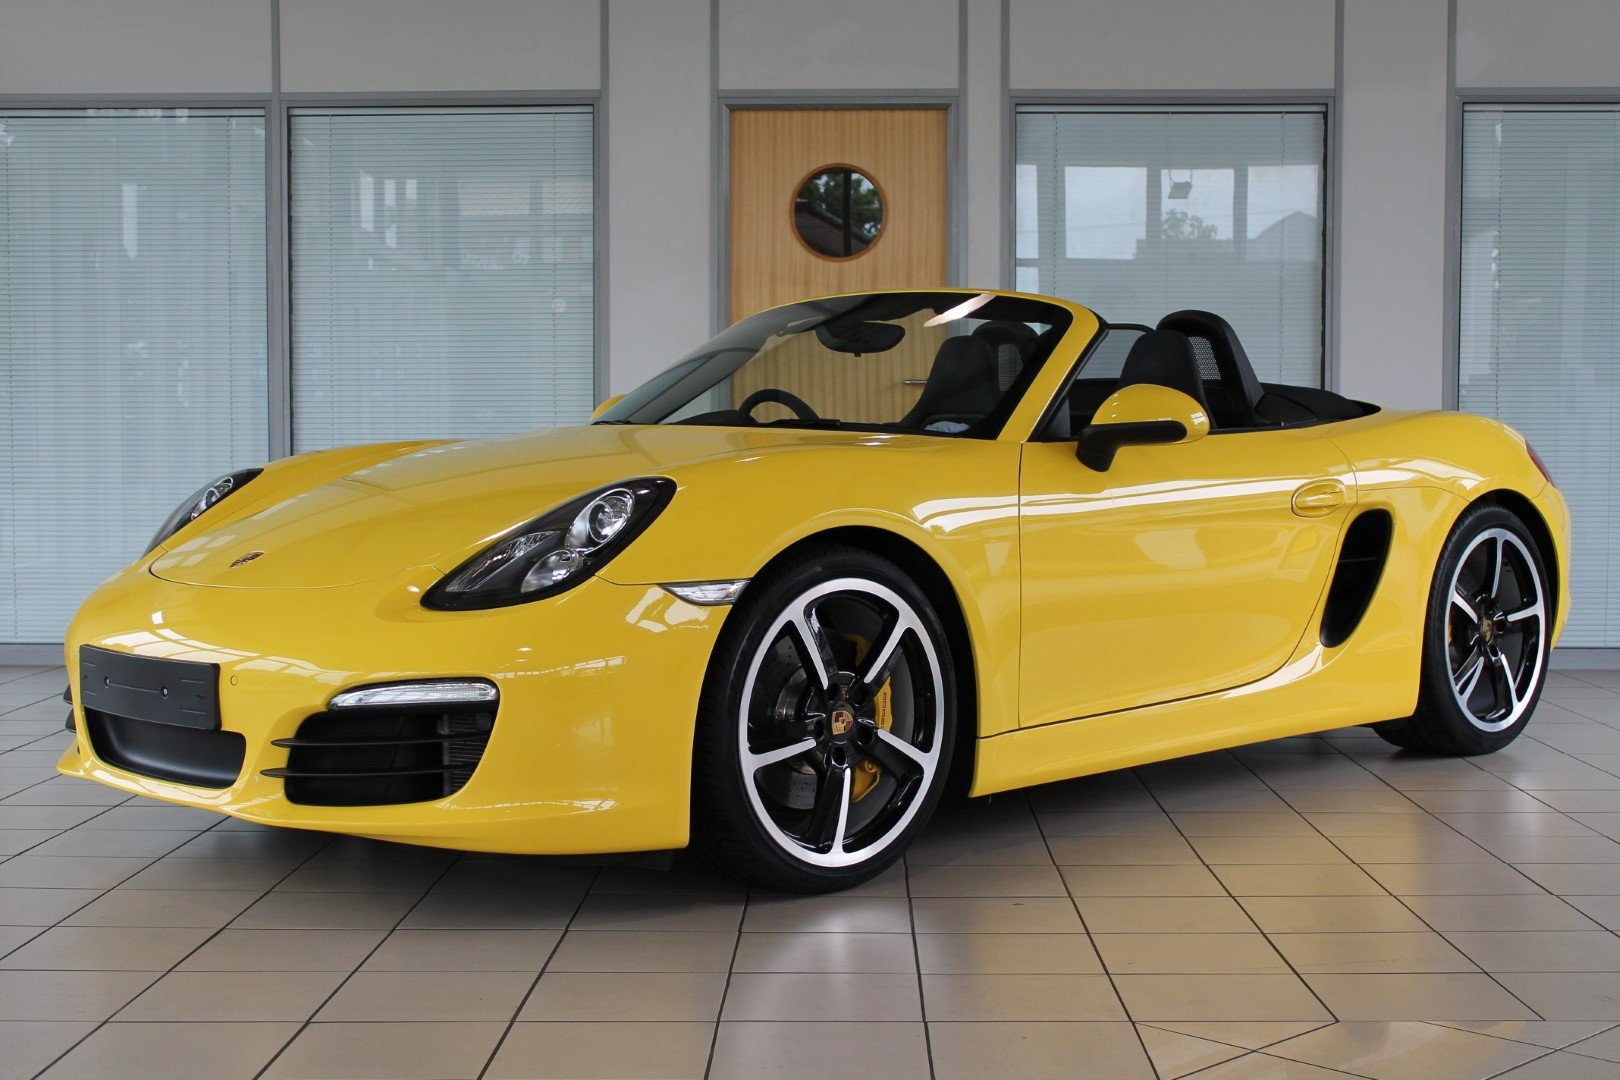 2015 Boxster (981) 3.4 'S' Manual For Sale (picture 1 of 6)